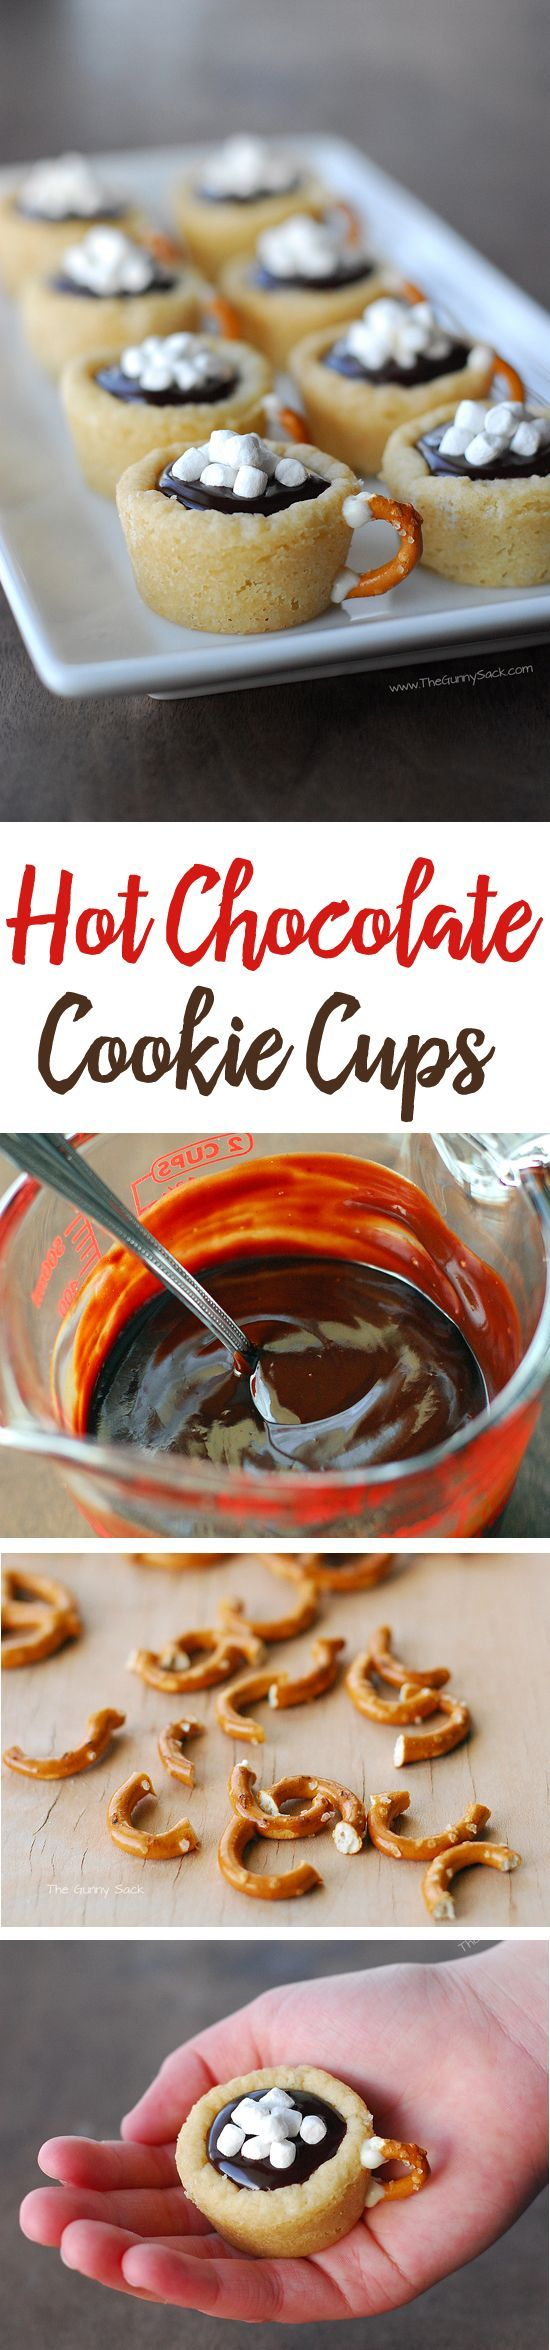 This easy cookie recipe for Hot Chocolate Cookie Cups is made with sugar cookies. They're filled with chocolate ganache and have a pretzel handle!: